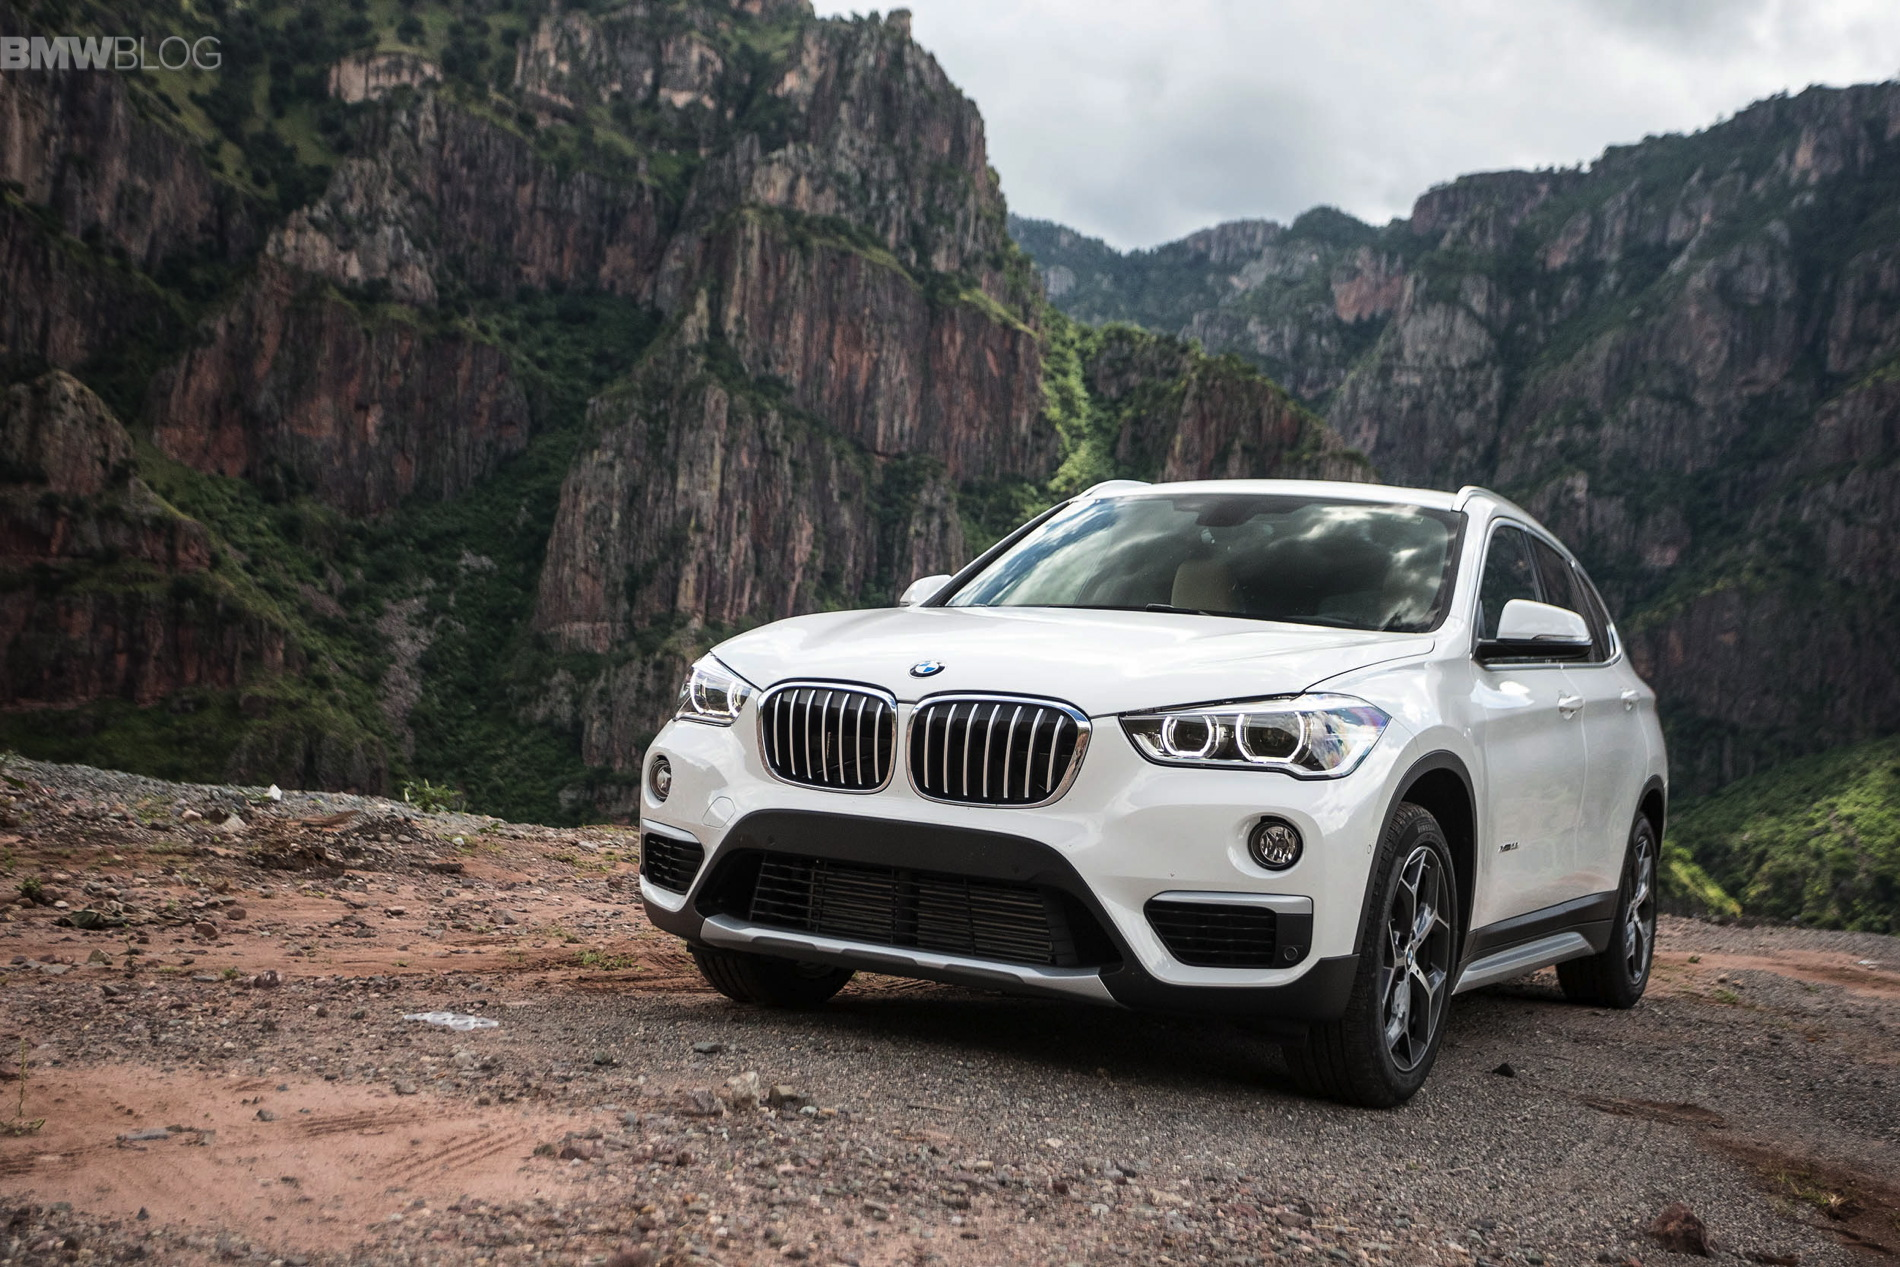 2016 bmw X1 xDrive28i test drive images 67